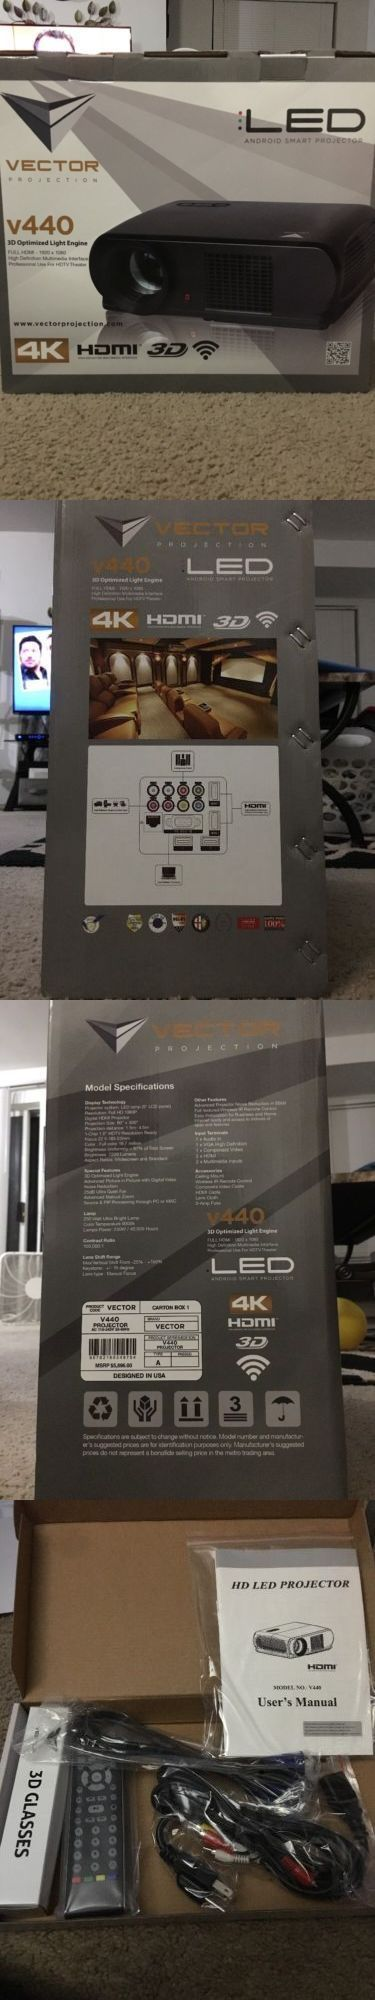 Projector Mounts and Stands: Vector Projection V440 Home Theater Set. Includes Projector Screen. All Sealed -> BUY IT NOW ONLY: $650 on eBay! #hometheaterprojectormount #hometheaterprojectorscreen #projectorscreen